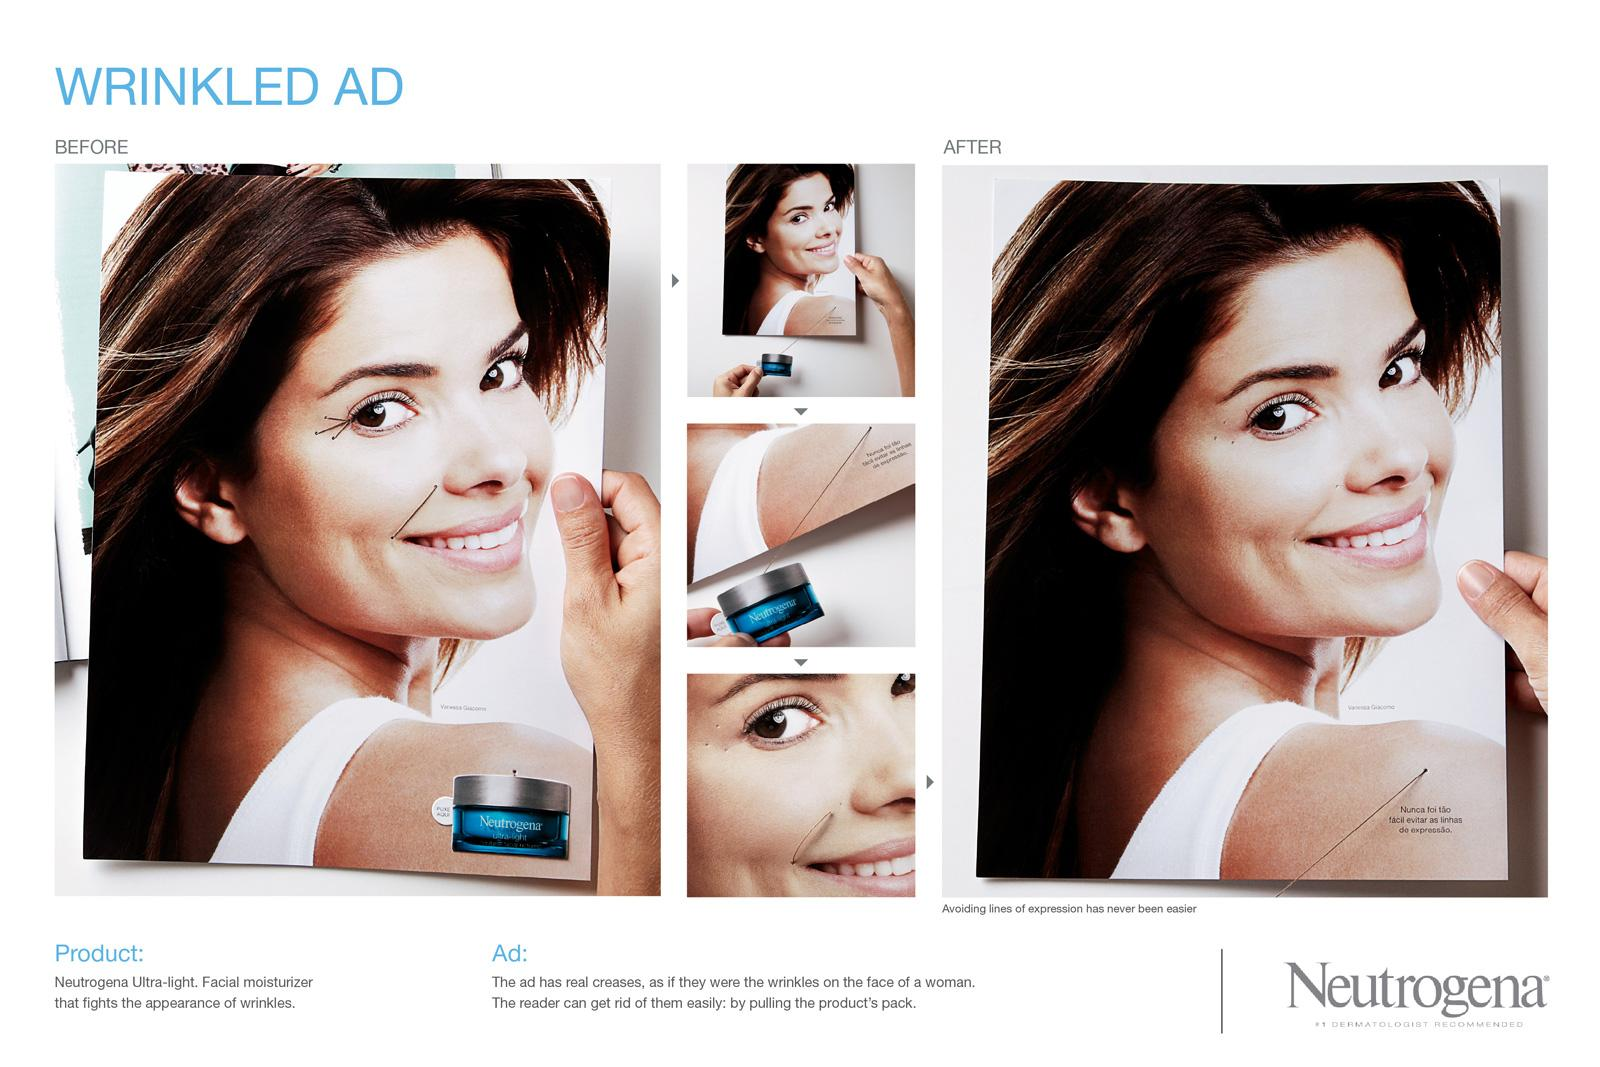 Neutrogena Direct Ad -  Wrinkled ad